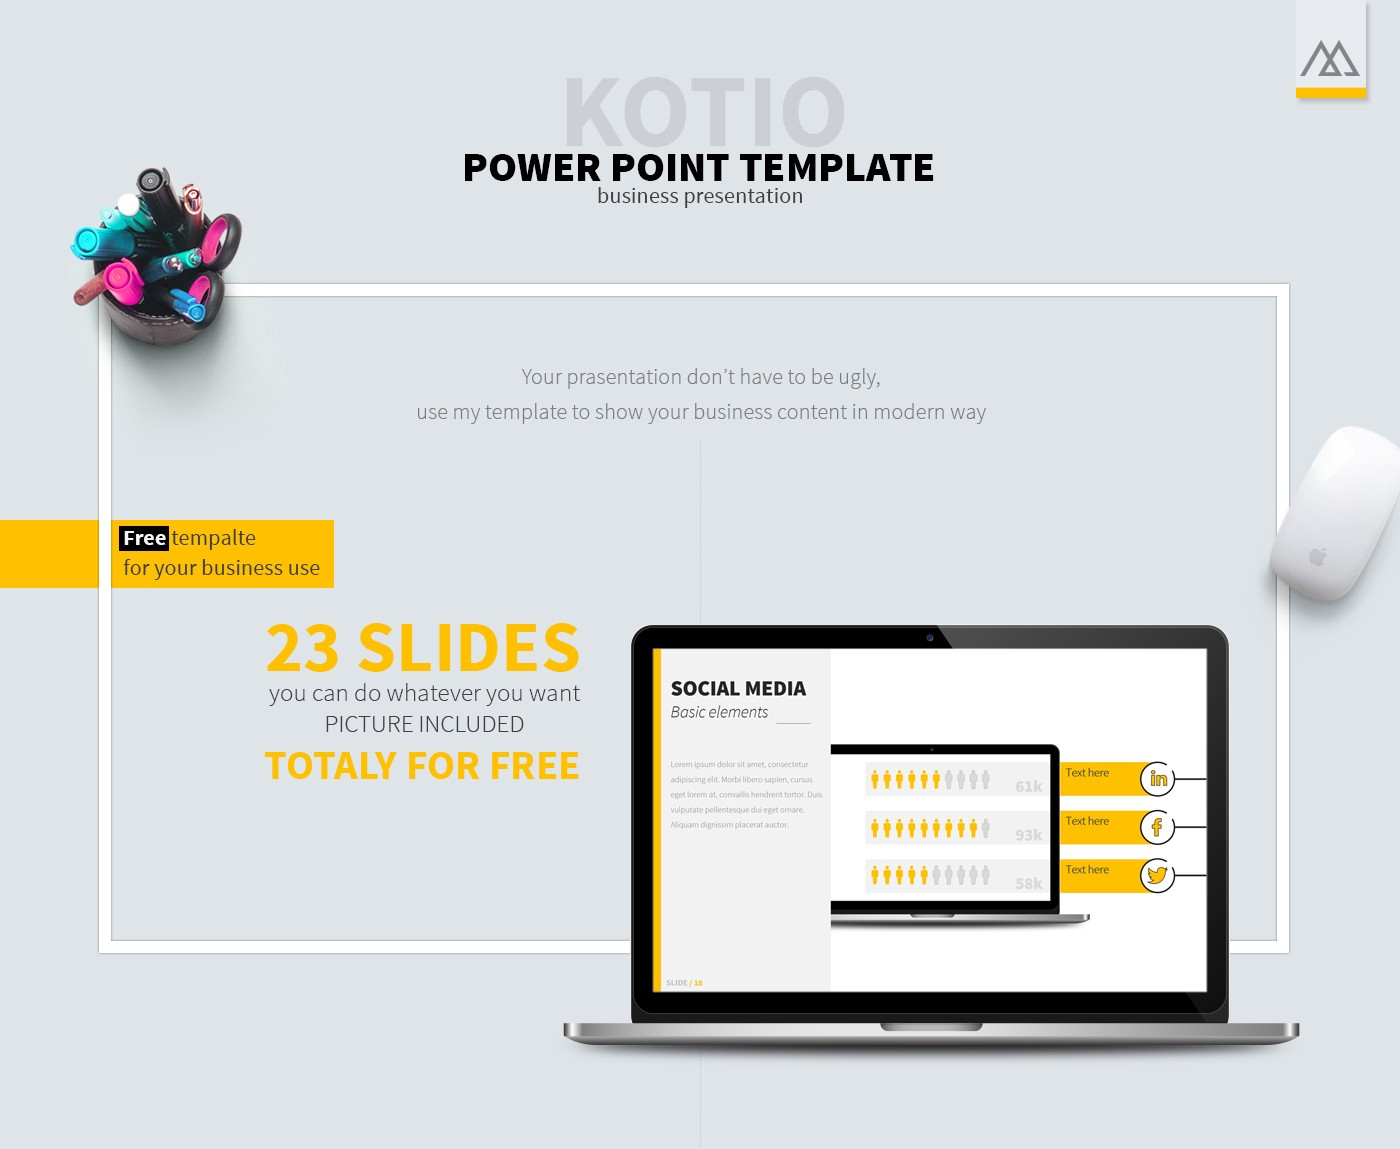 40 free cool powerpoint templates for presentations download cheaphphosting Image collections